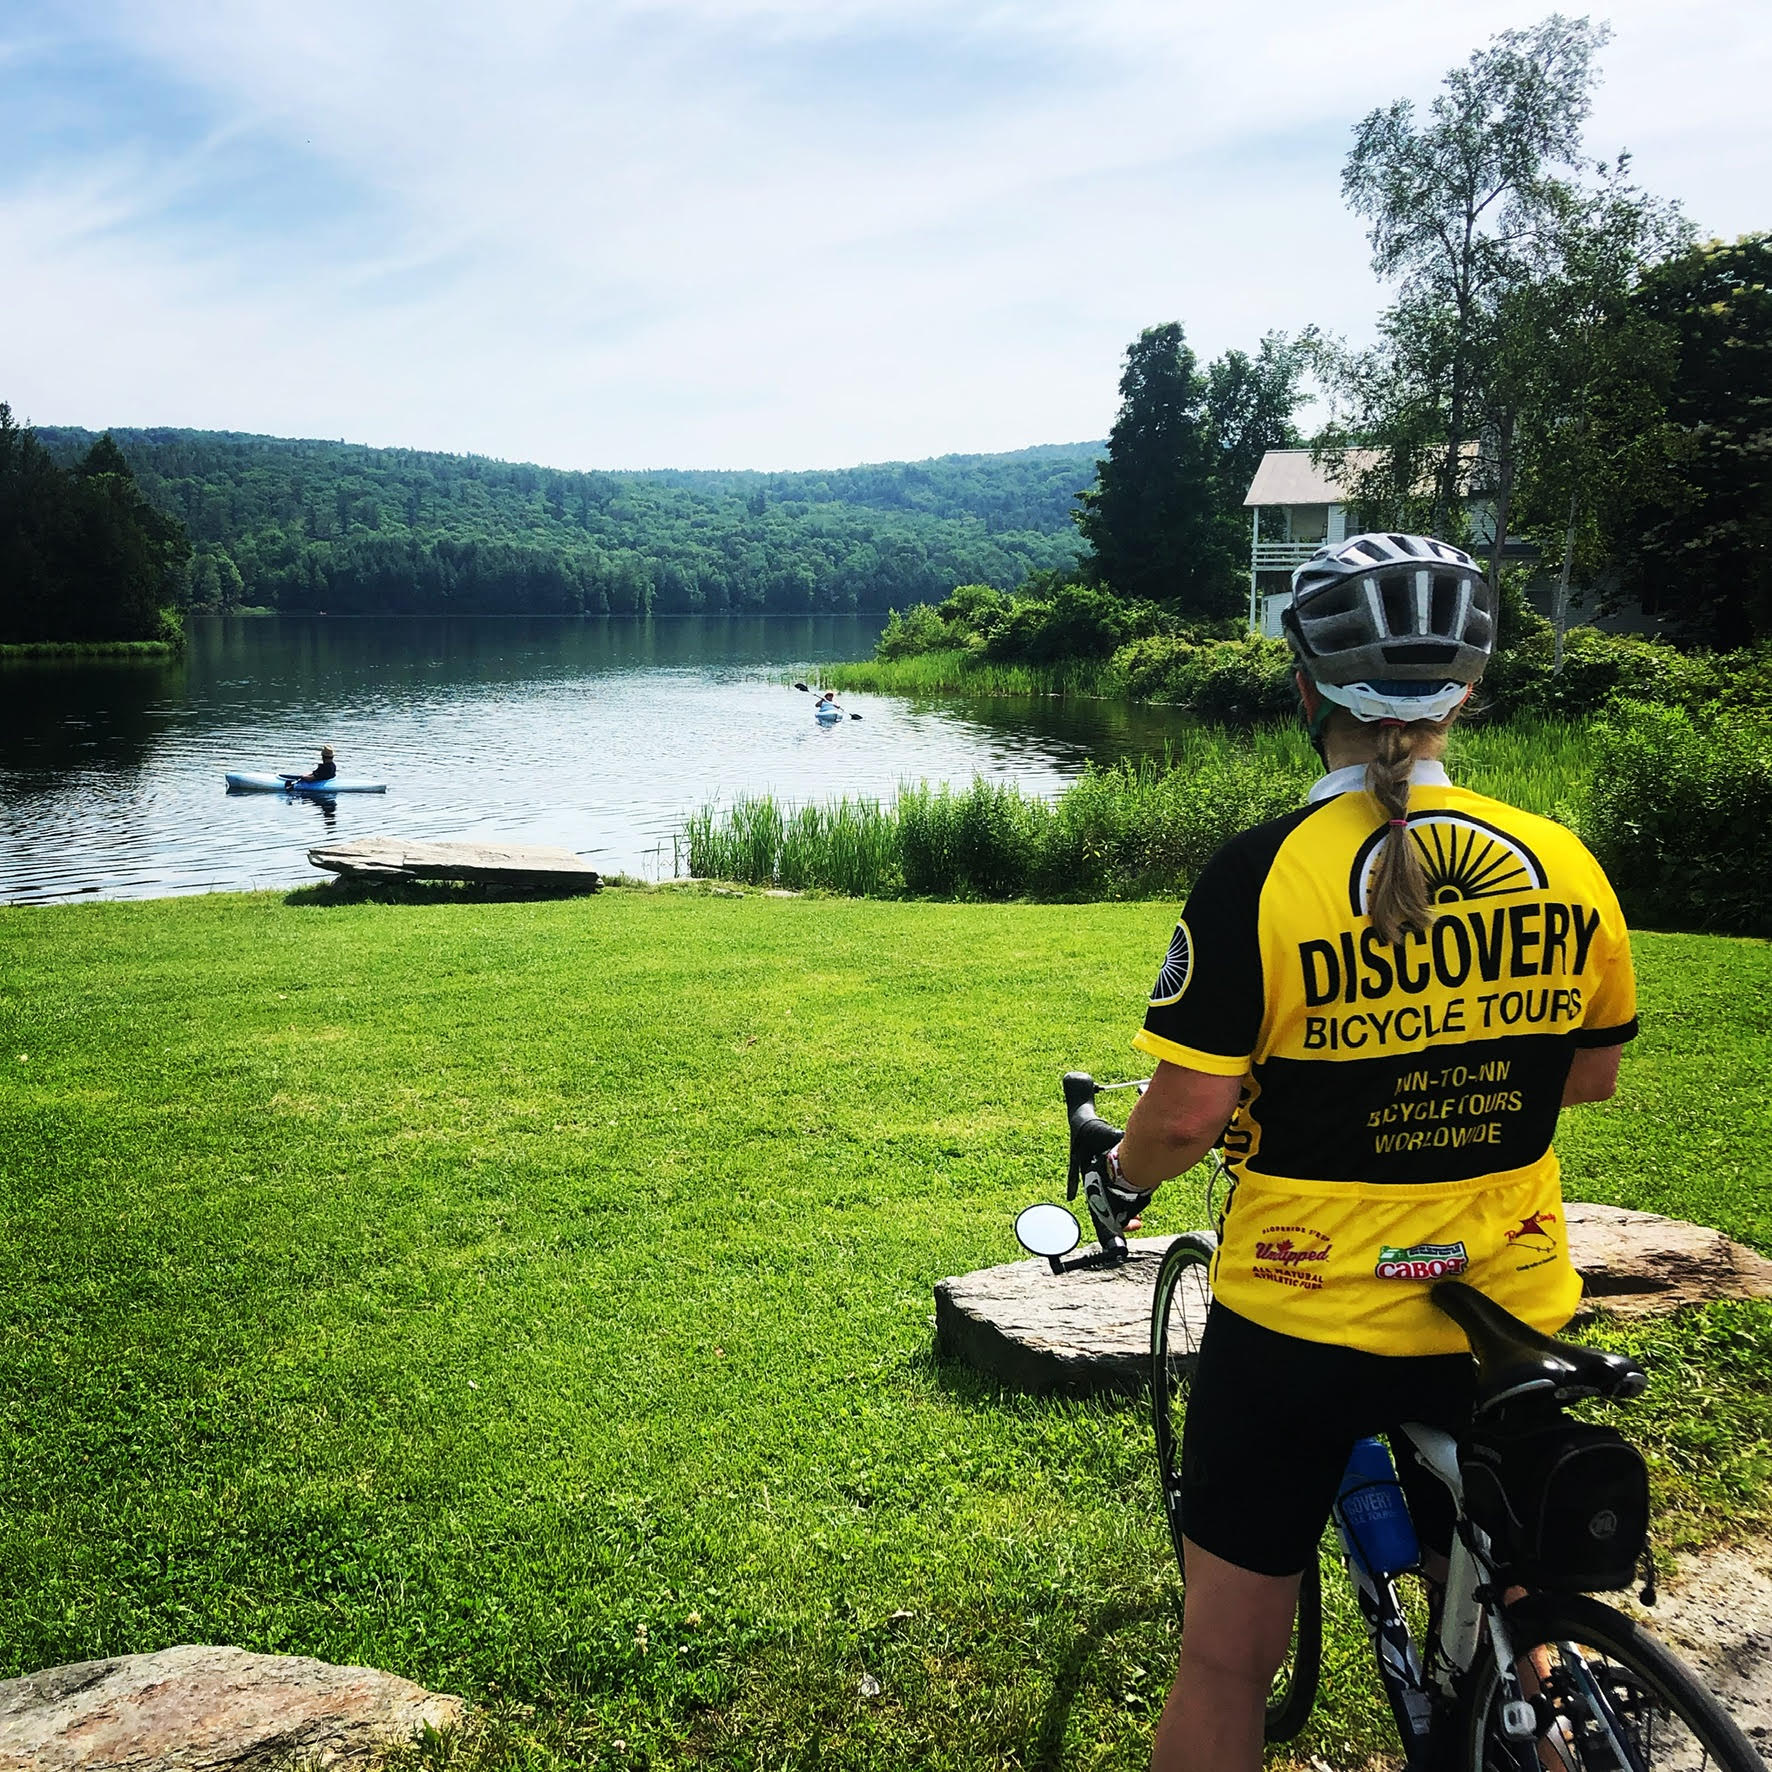 Photo Credit: Discovery Bicycle Tours